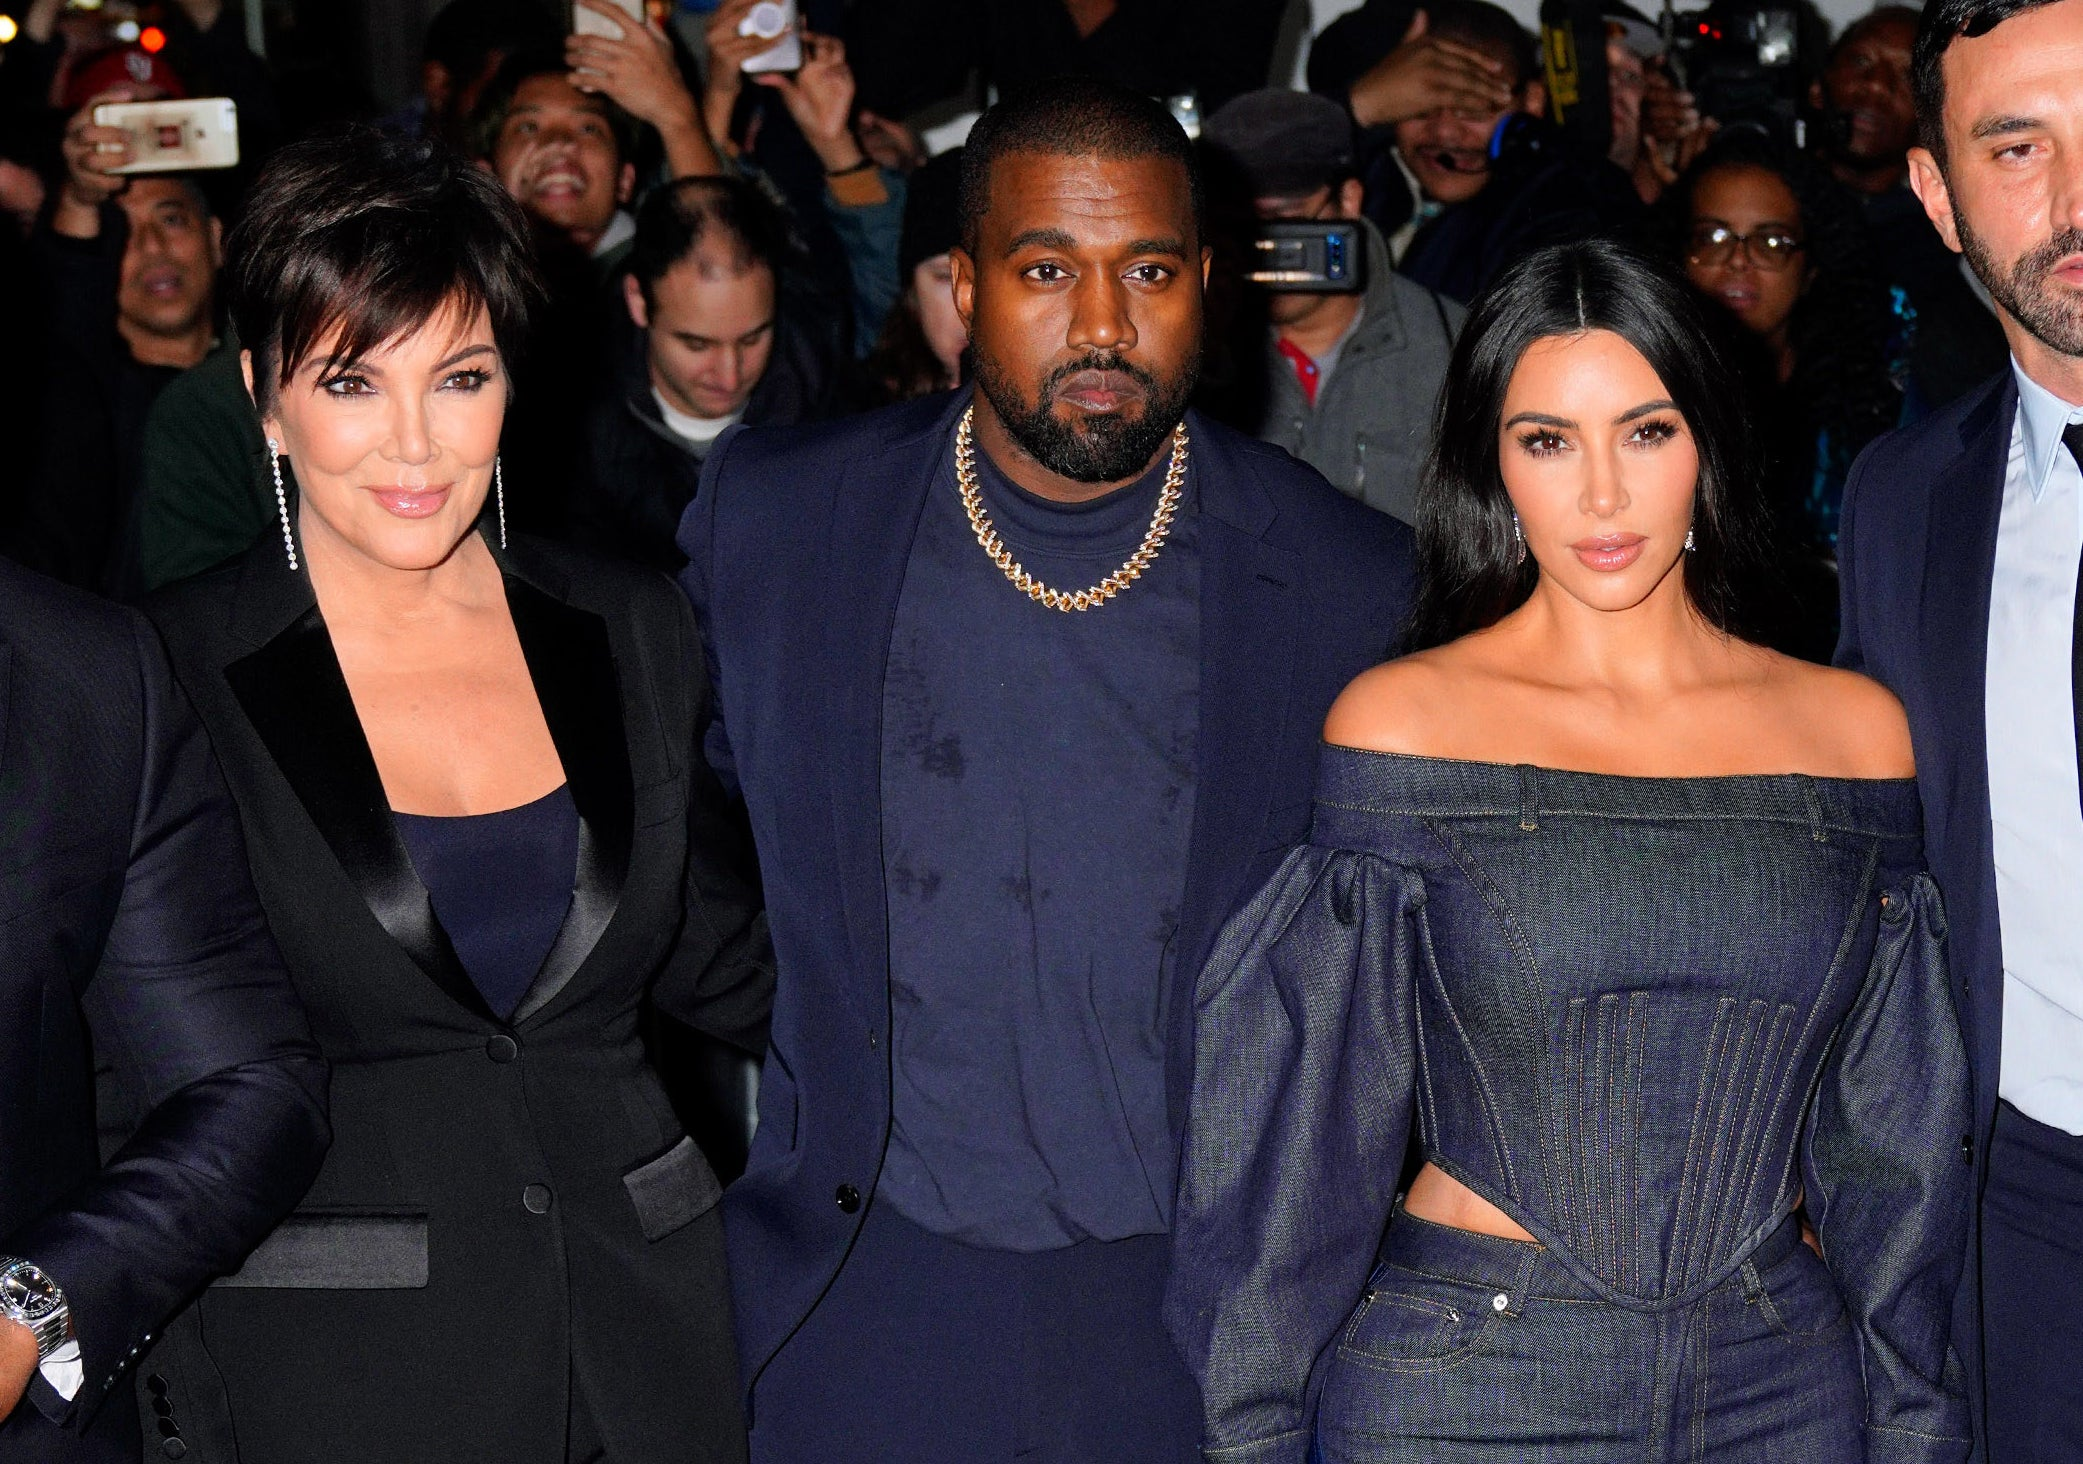 Kris, Kanye, and Kim walk together while being followed by camera